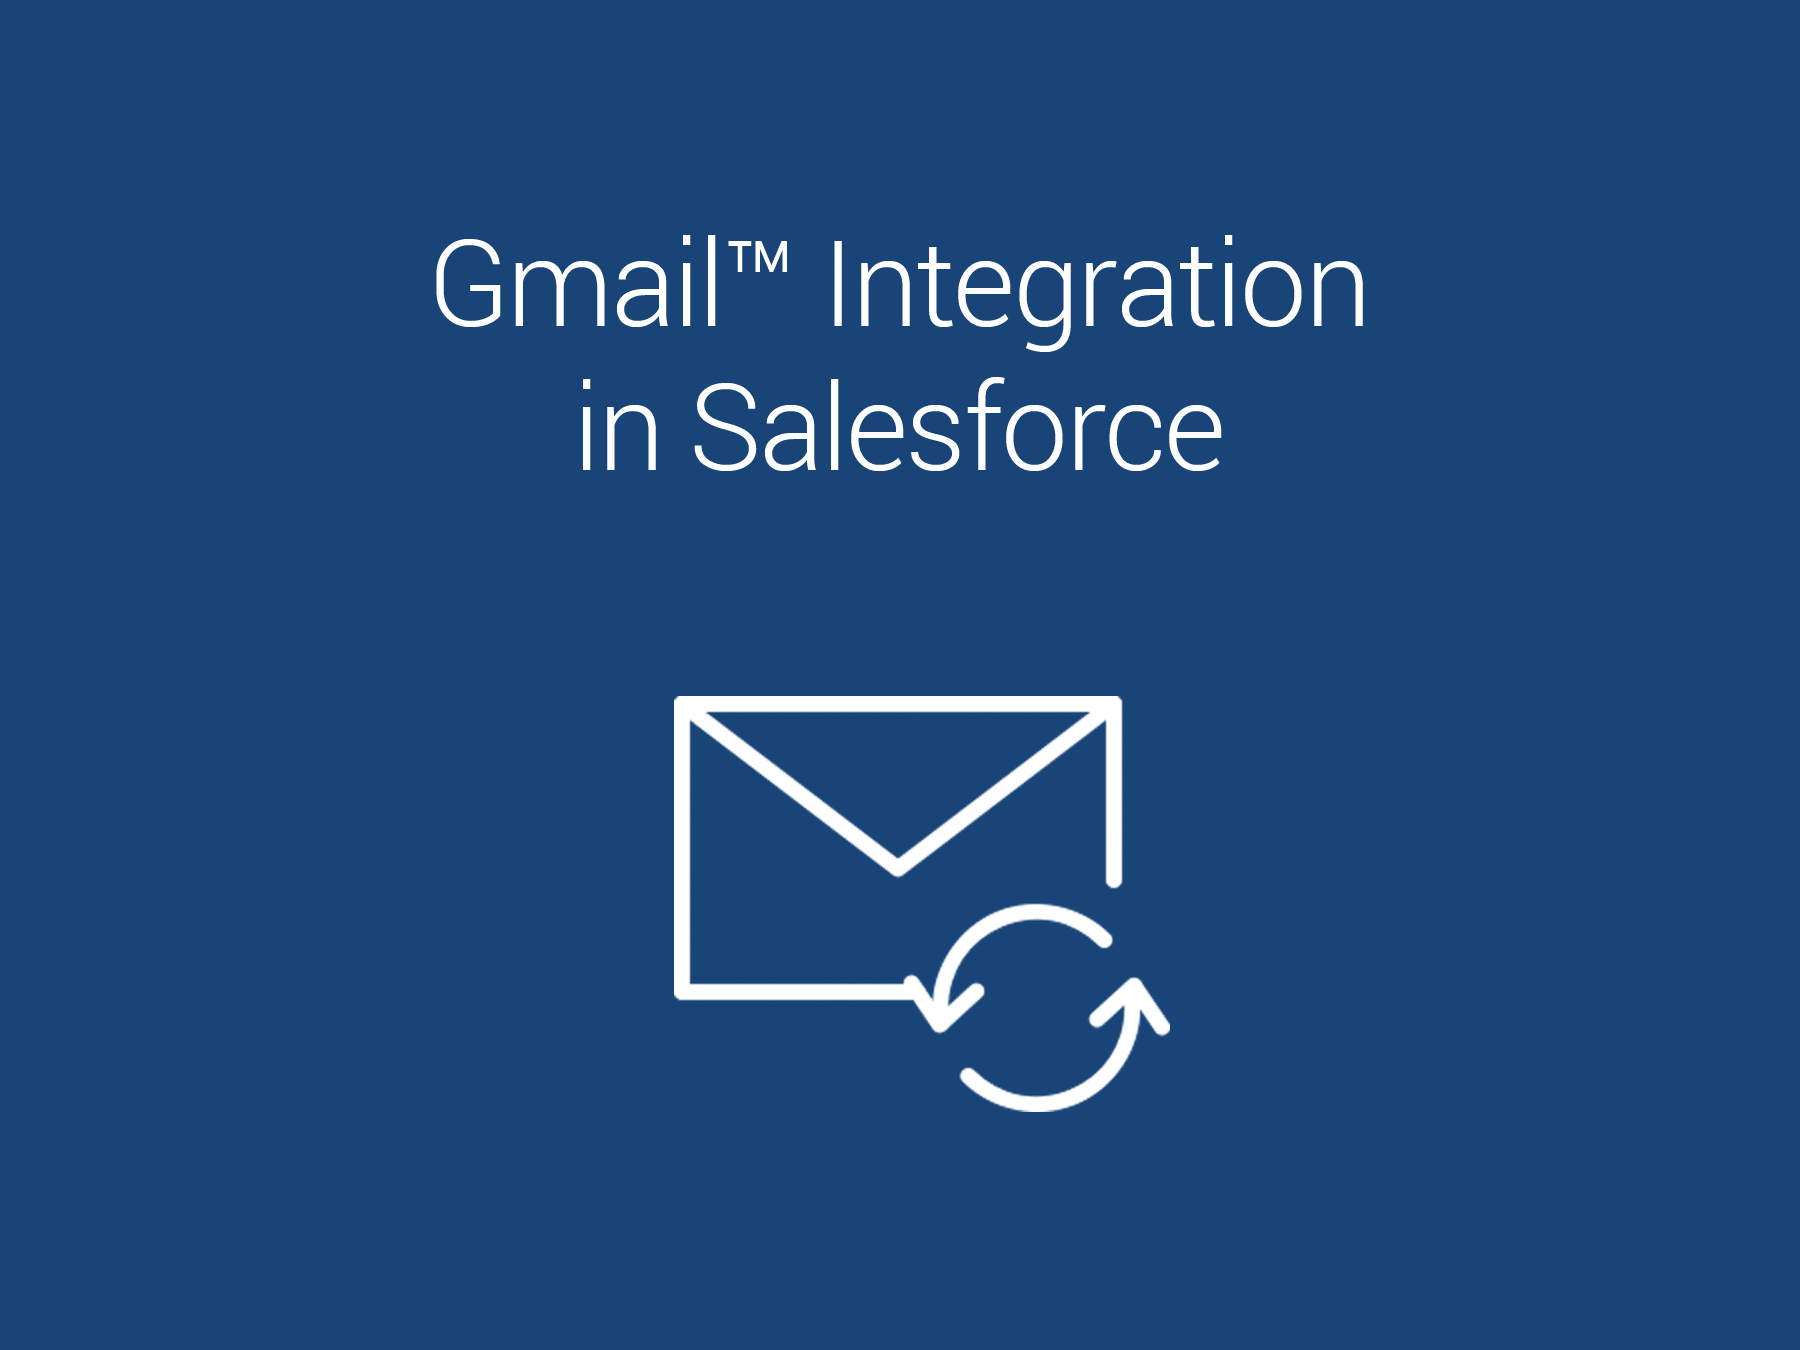 Gmail™ Integration in Salesforce